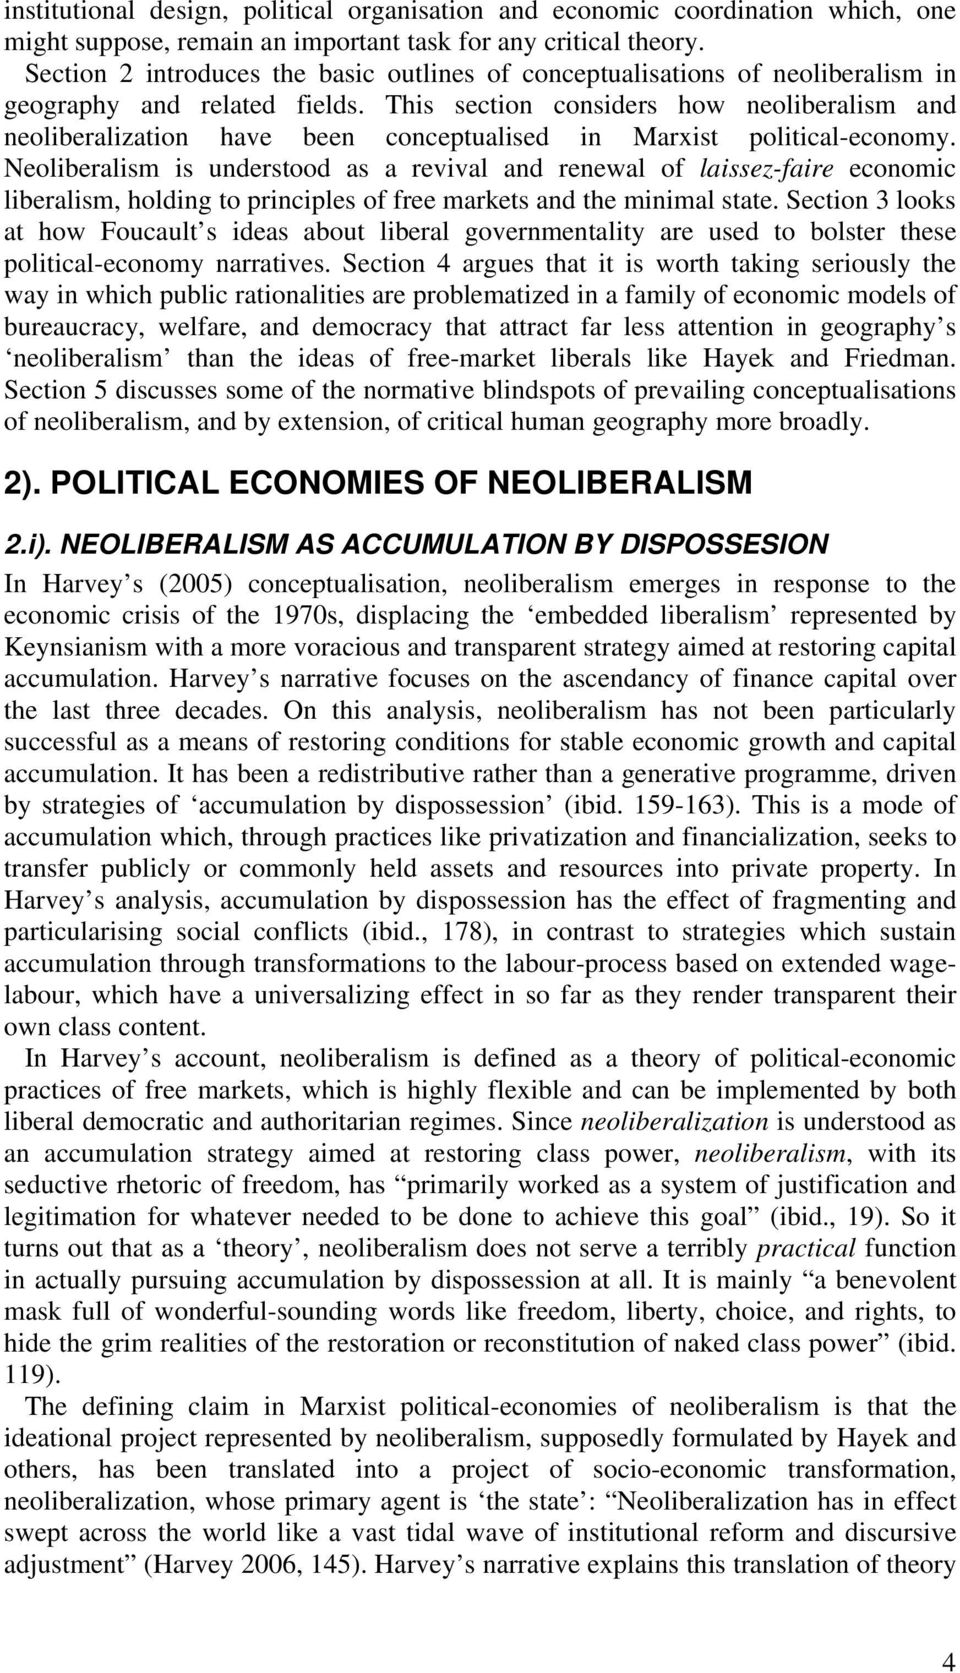 This section considers how neoliberalism and neoliberalization have been conceptualised in Marxist political-economy.